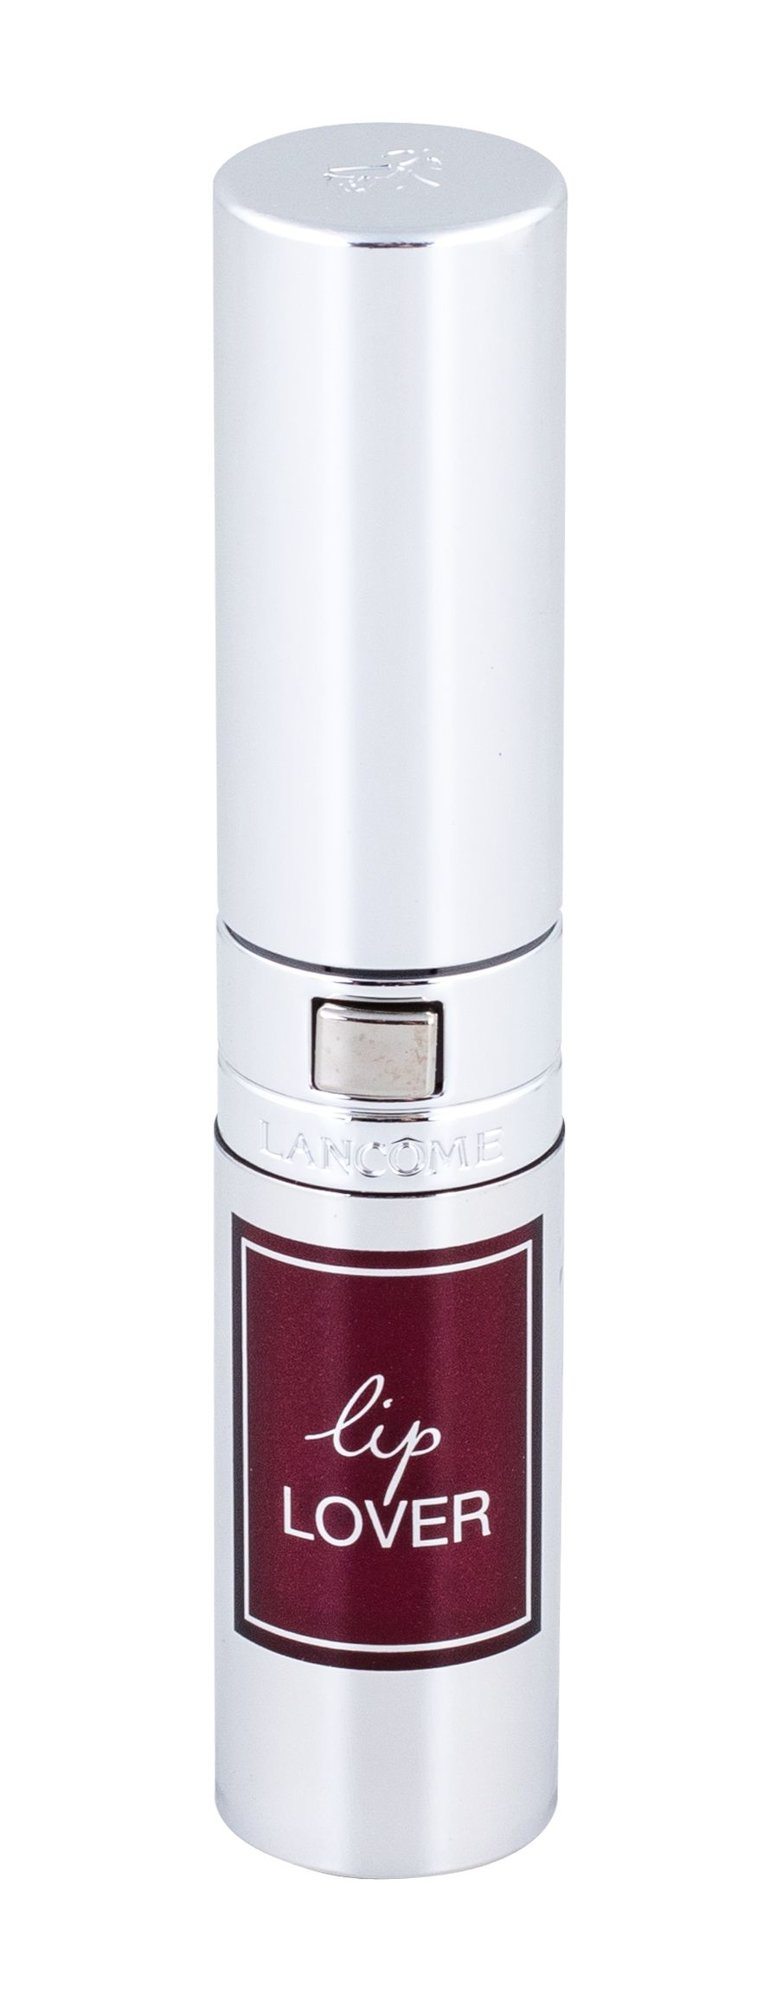 Lancôme Lip Lover Cosmetic 4,5ml 362 Bordeaux Tempo